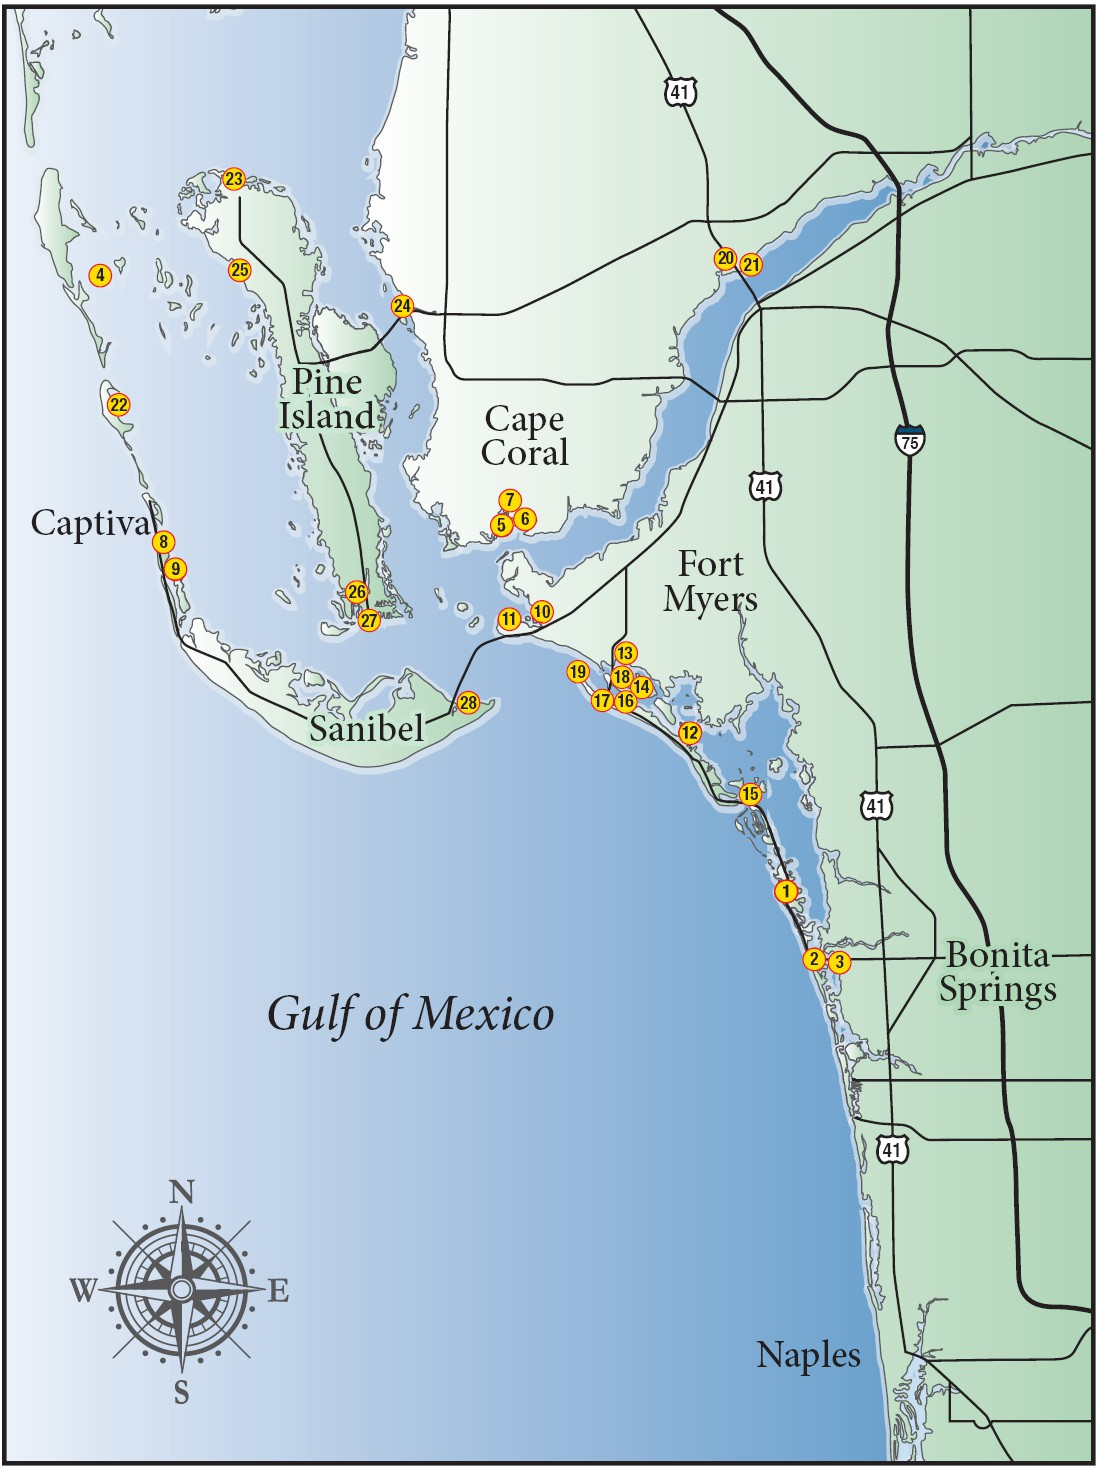 A boater's guide to food and drink on area waters | Fort ... on map of indian rocks beach fl, map of apopka fl, map of winter haven fl, map of cayo costa state park fl, map of fort walton beach fl, map of pine island fl, map of east palatka fl, map of navarre fl, map of ponte vedra beach fl, map of sebastian fl, map of mexico beach fl, map of cape san blas fl, map of orange park fl, map of weeki wachee fl, map of sunny isles beach fl, map of high springs fl, map of atlantic beach fl, map of cocoa fl, map of new port richey fl, map of indialantic fl,